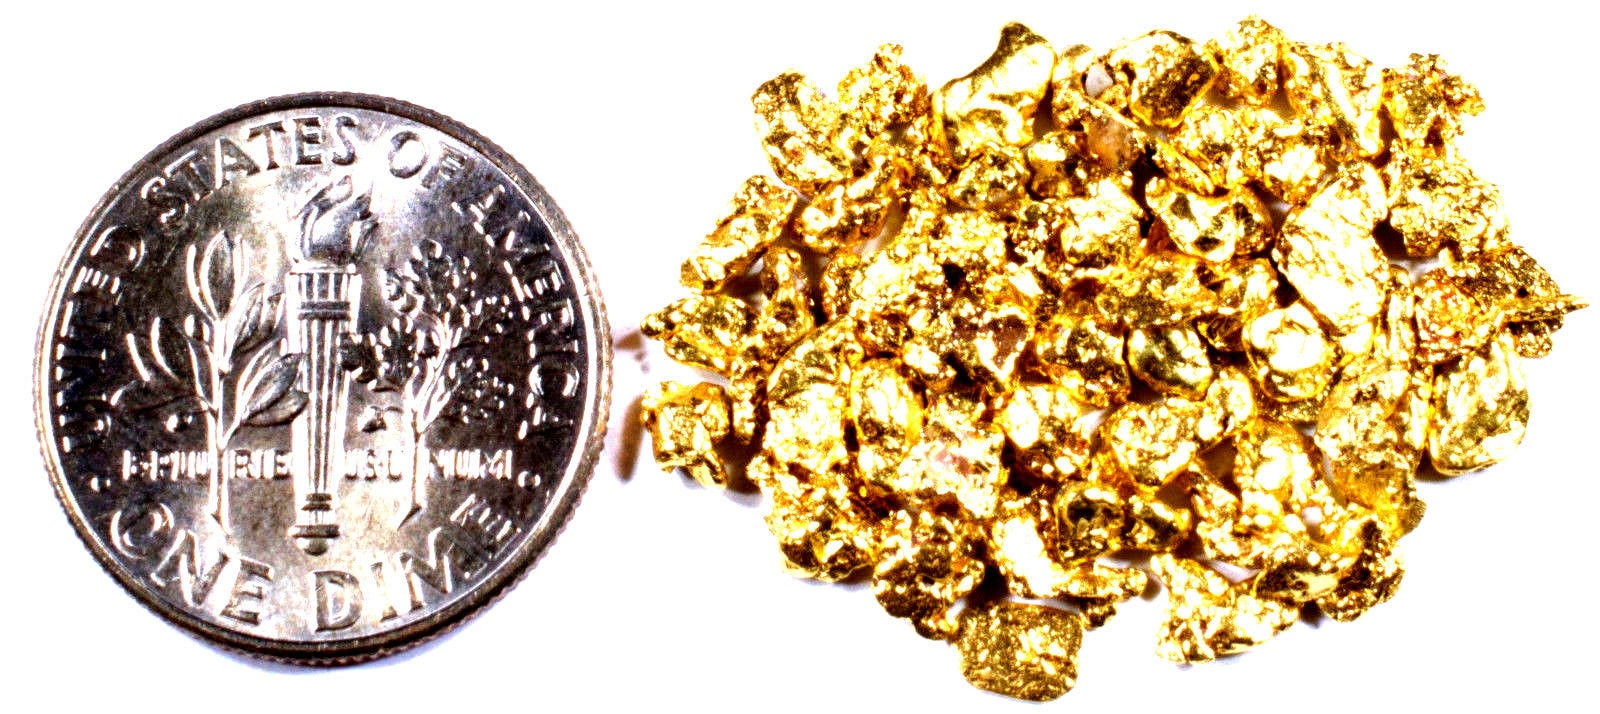 10.000 GRAMS ALASKAN YUKON BC NATURAL PURE GOLD NUGGETS #10 MESH - Liquidbullion